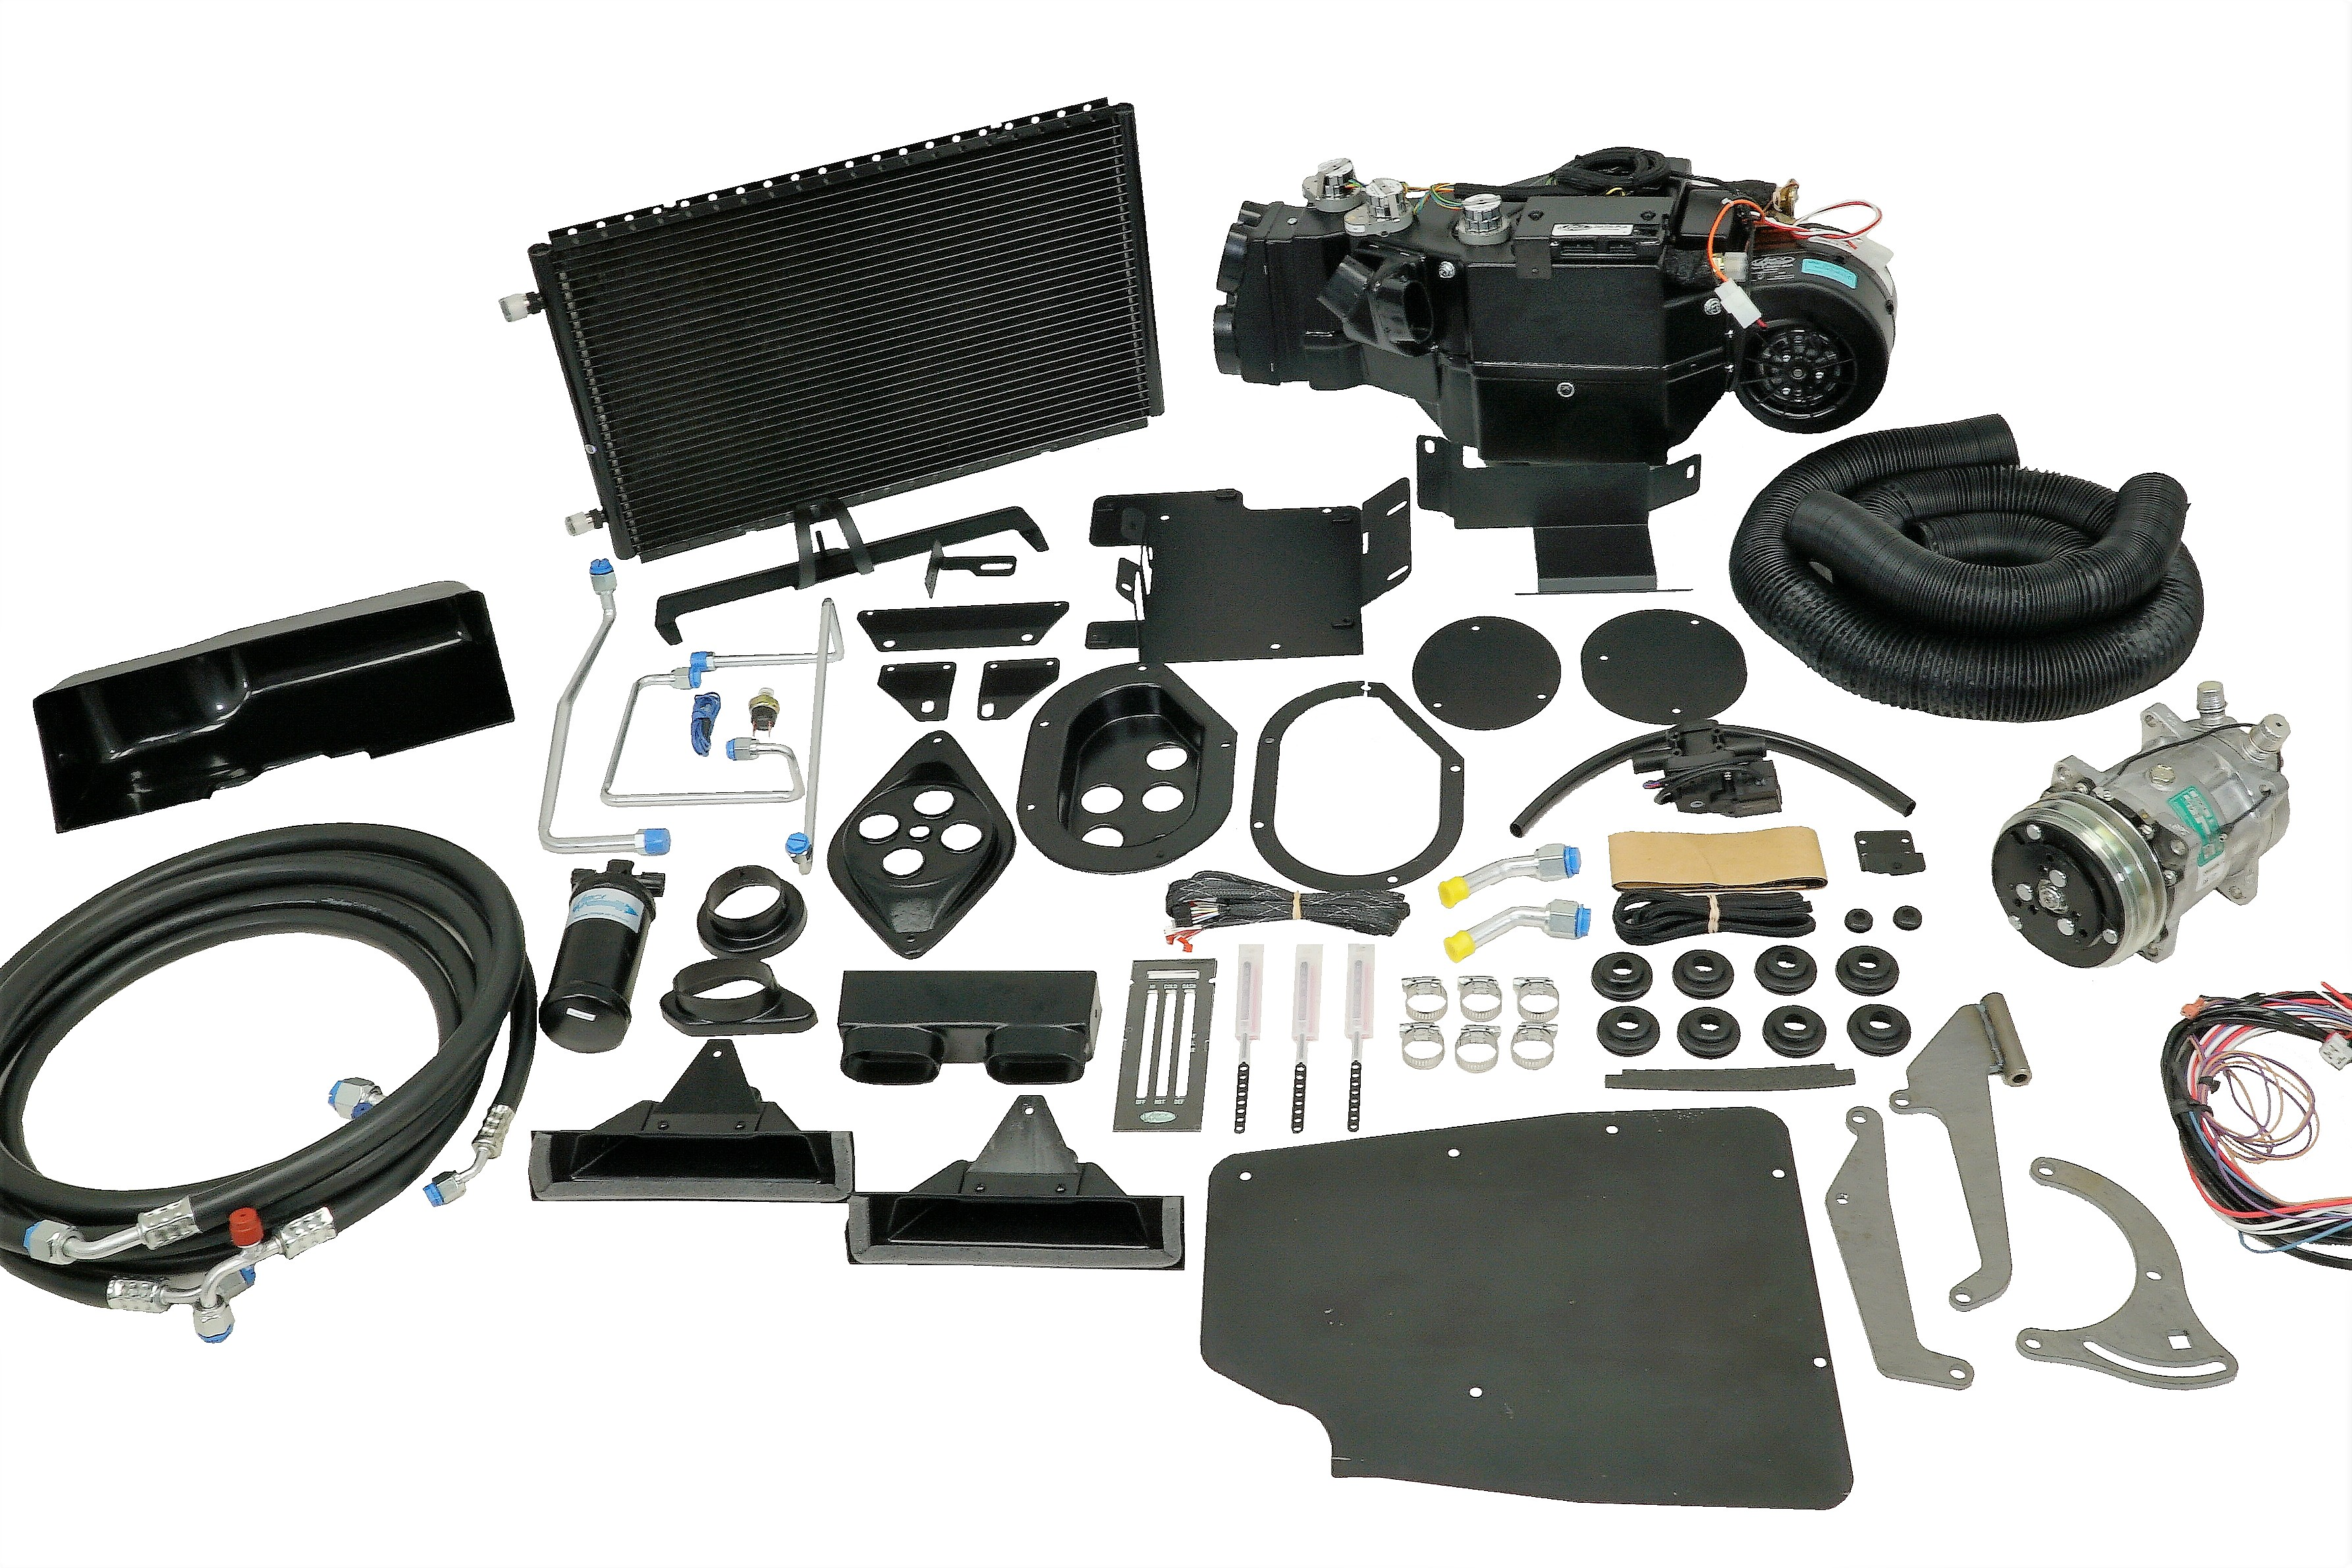 Vintage Air Updates A/C System Kit For 1969 Chevy Camaro